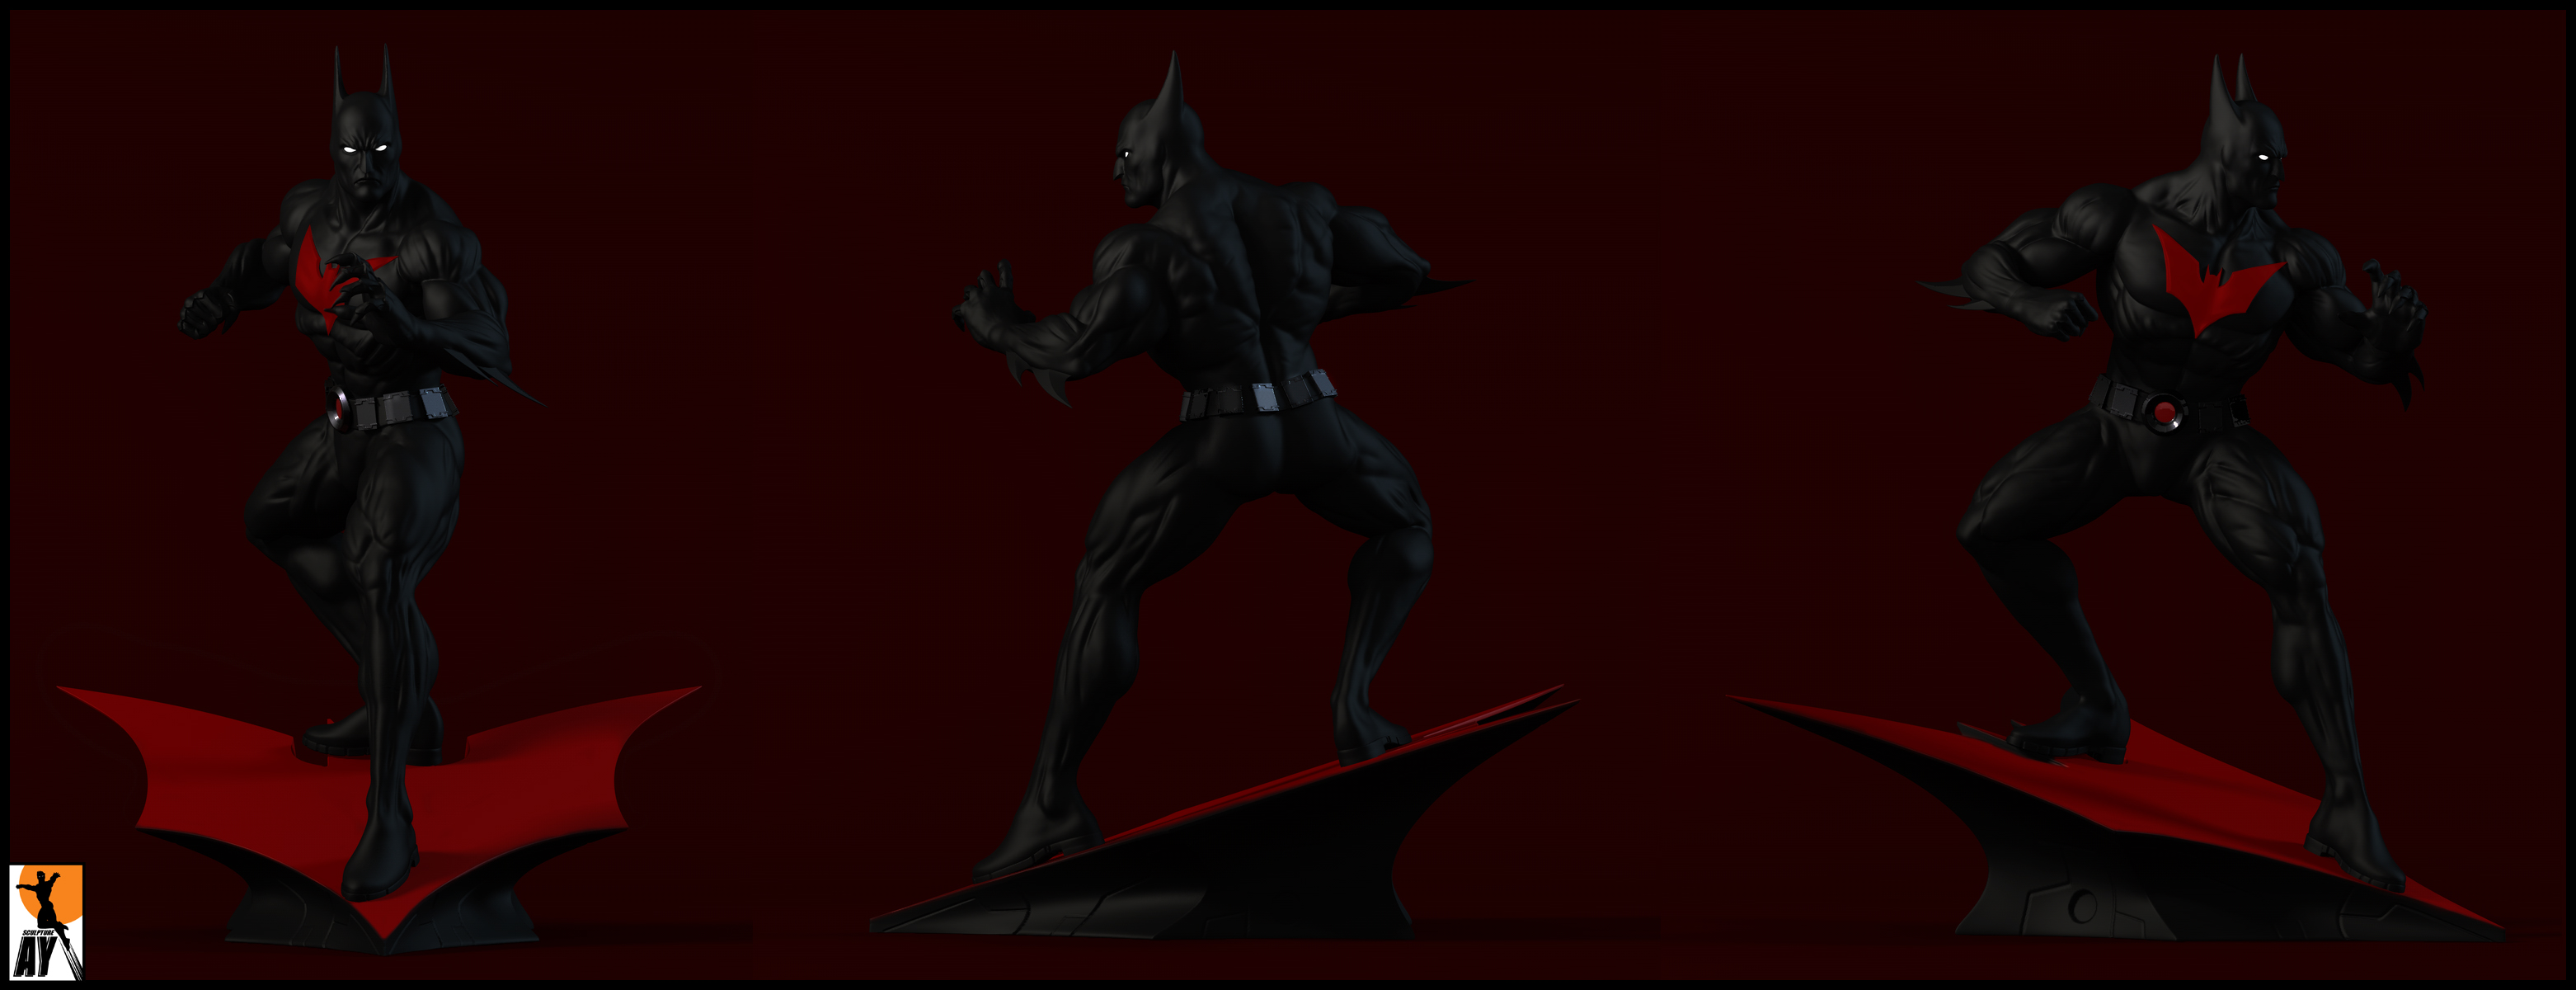 Batman Beyond by AYsculpture on deviantART